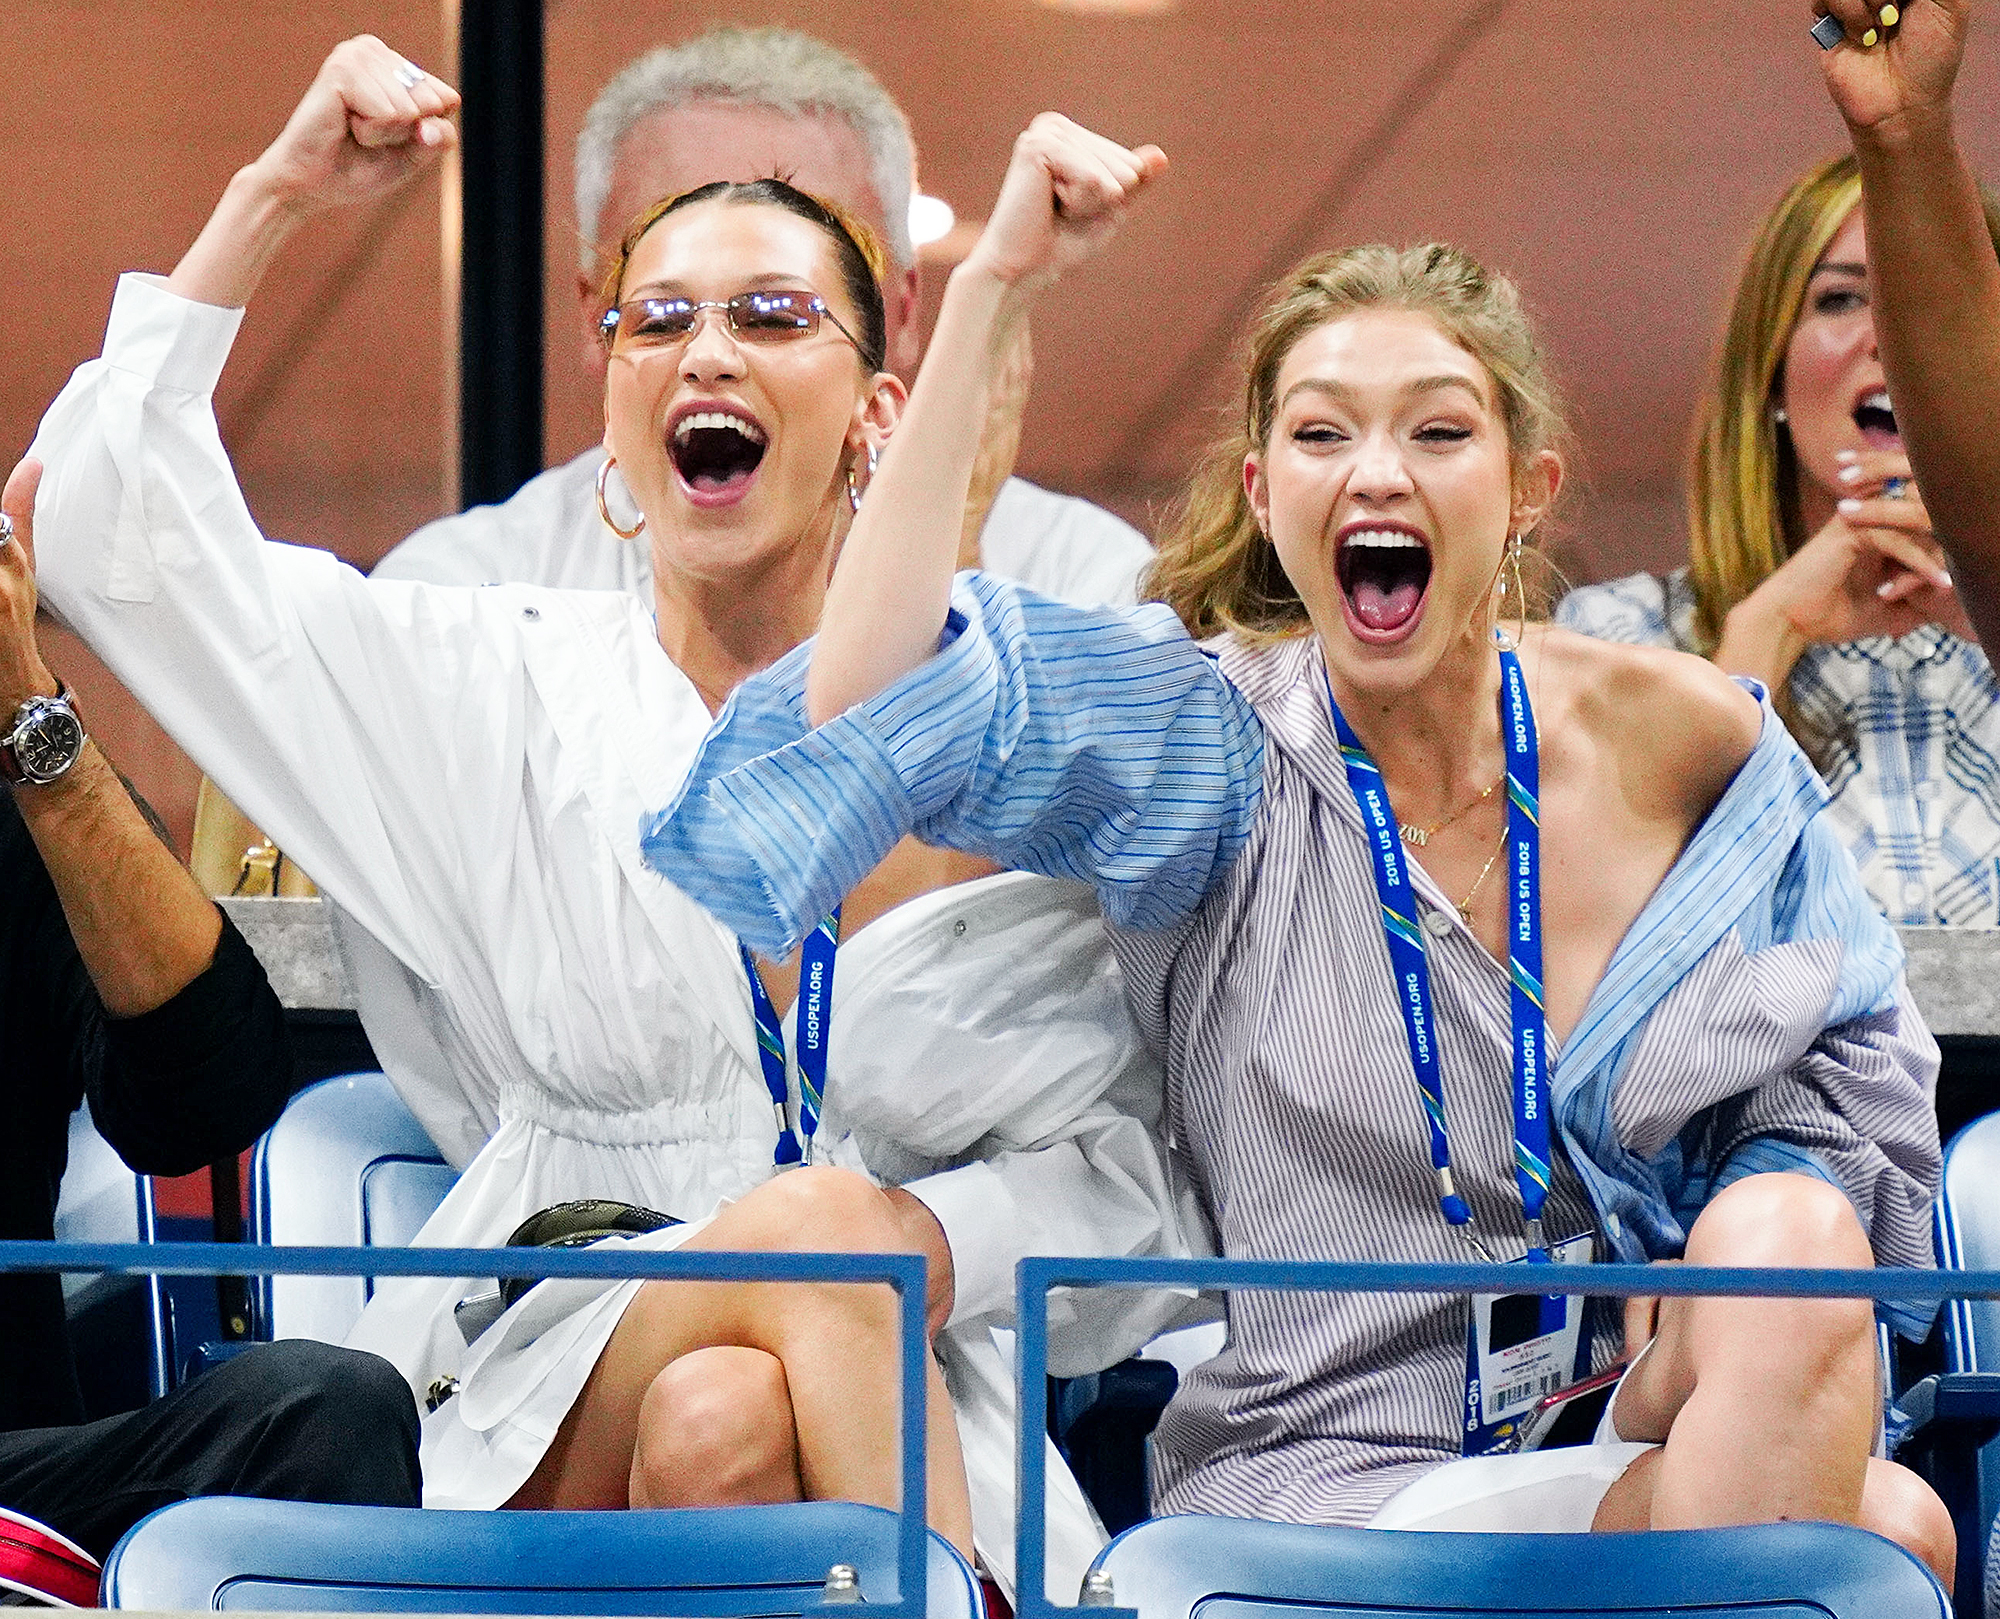 Bella Hadid Gigi Hadid Venus Williams Us Open 2018 - The supermodel sisters got into the gameday spirit on September 4.